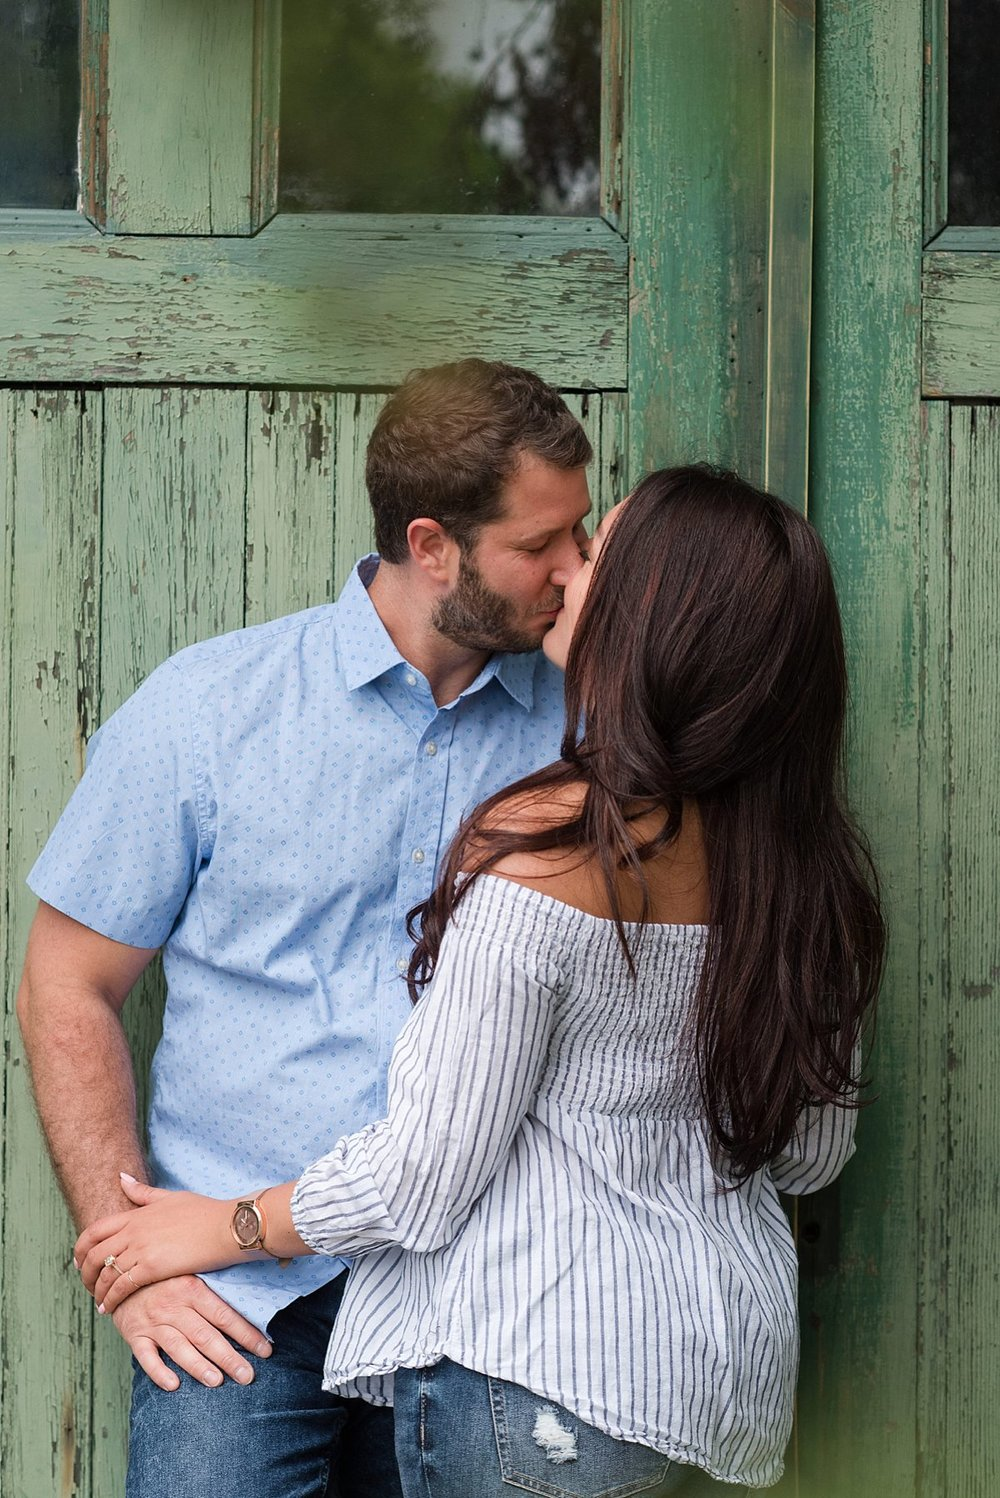 Engagement photos